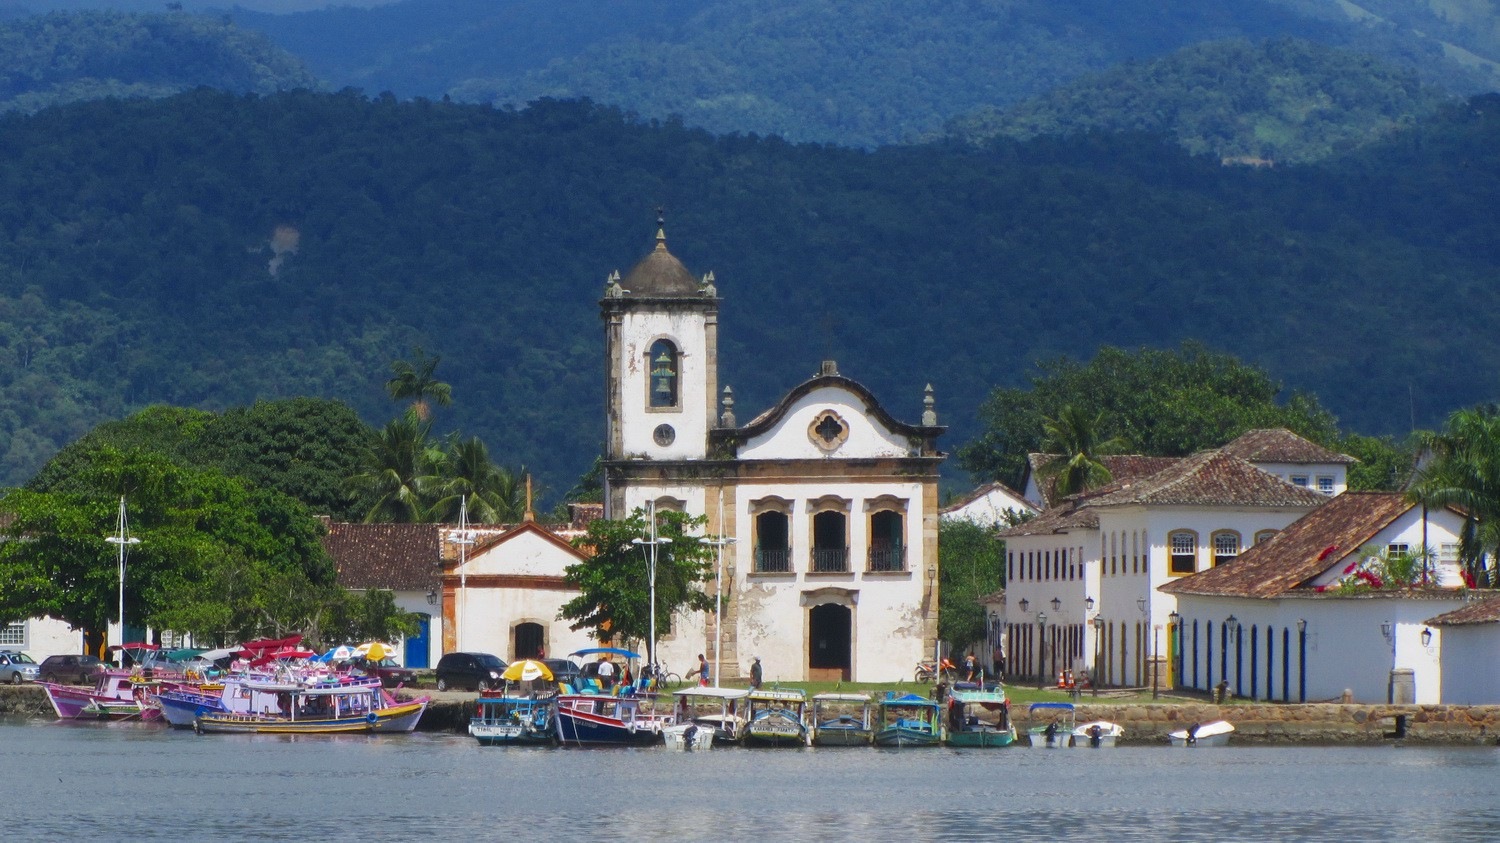 Church Igreja Santa Rita dos Pardos Libertos in Paraty, seen from the excursion boat